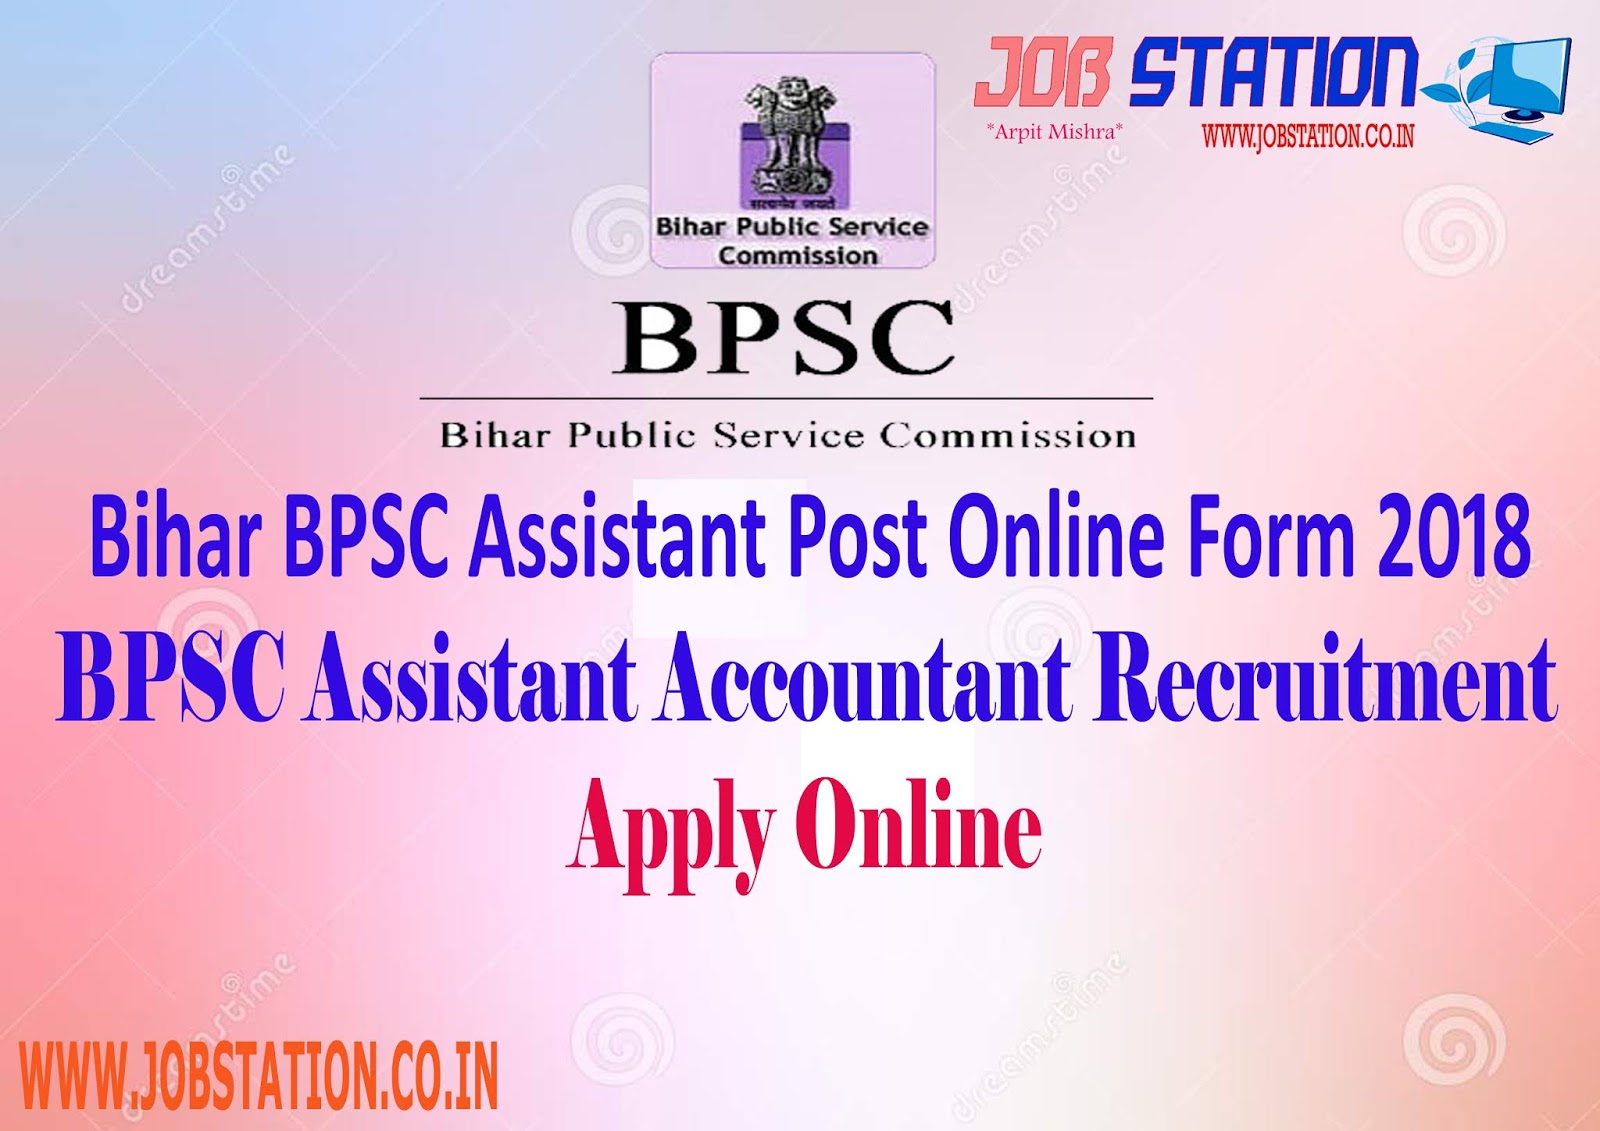 BPSC Assistant Accountant Recruitment 2018 | Apply Online